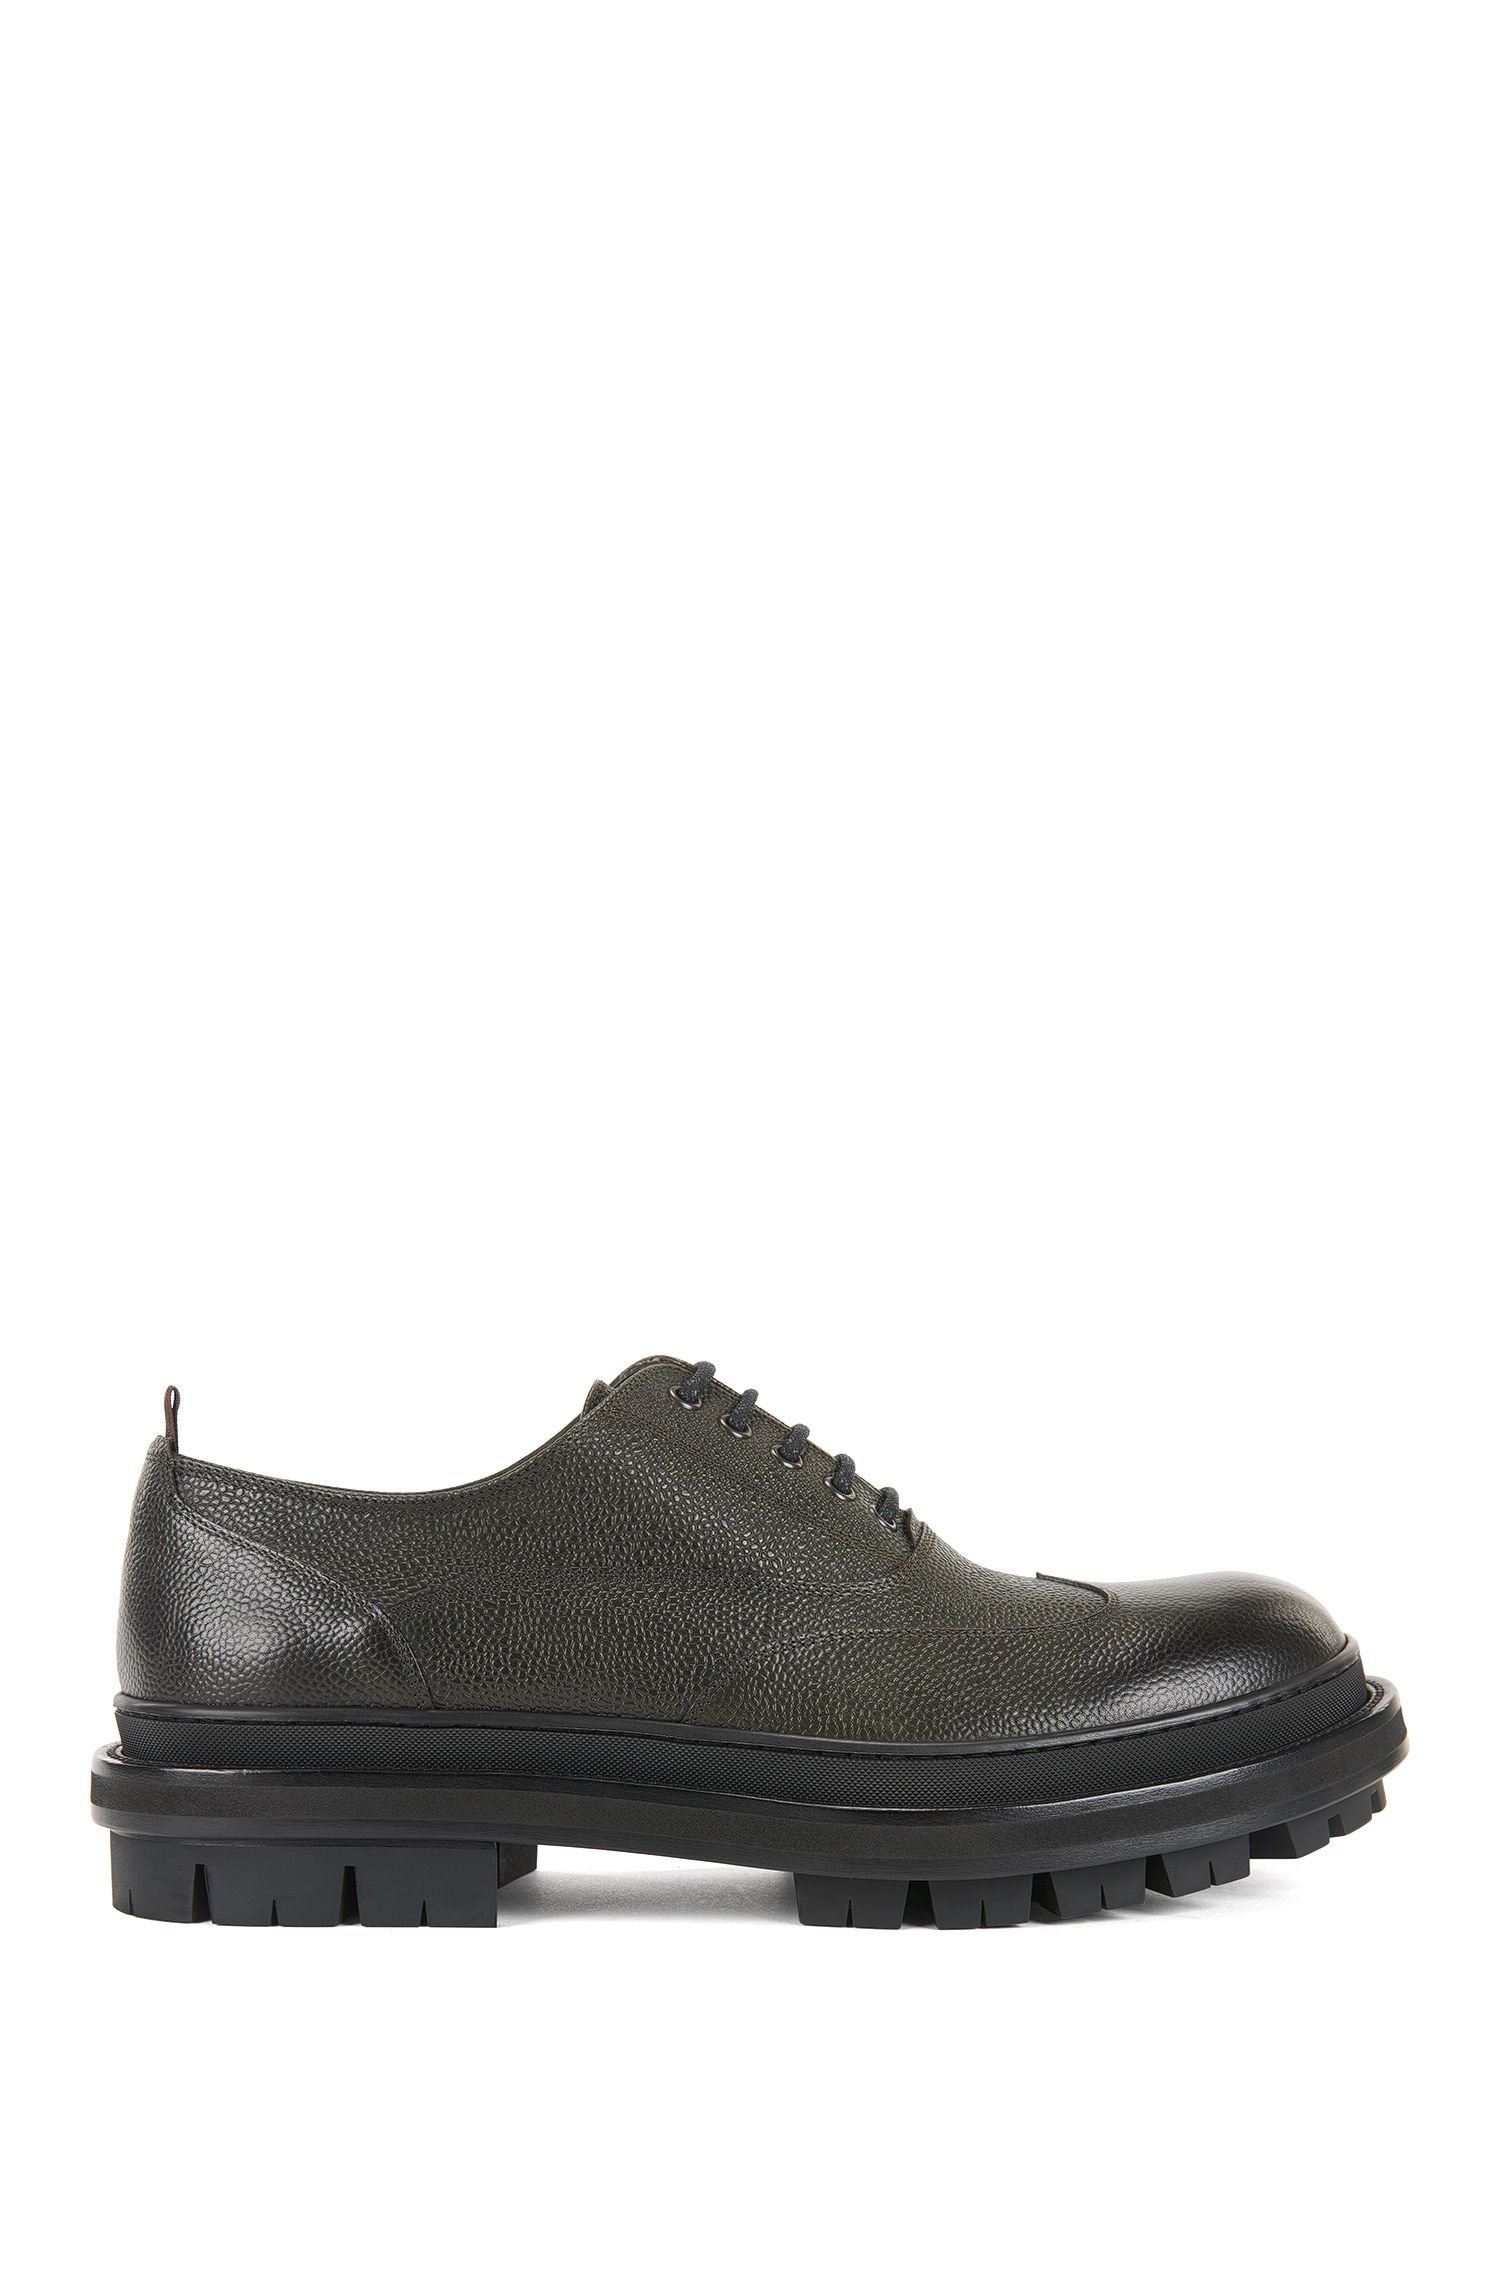 Scarpe Oxford in pelle martellata